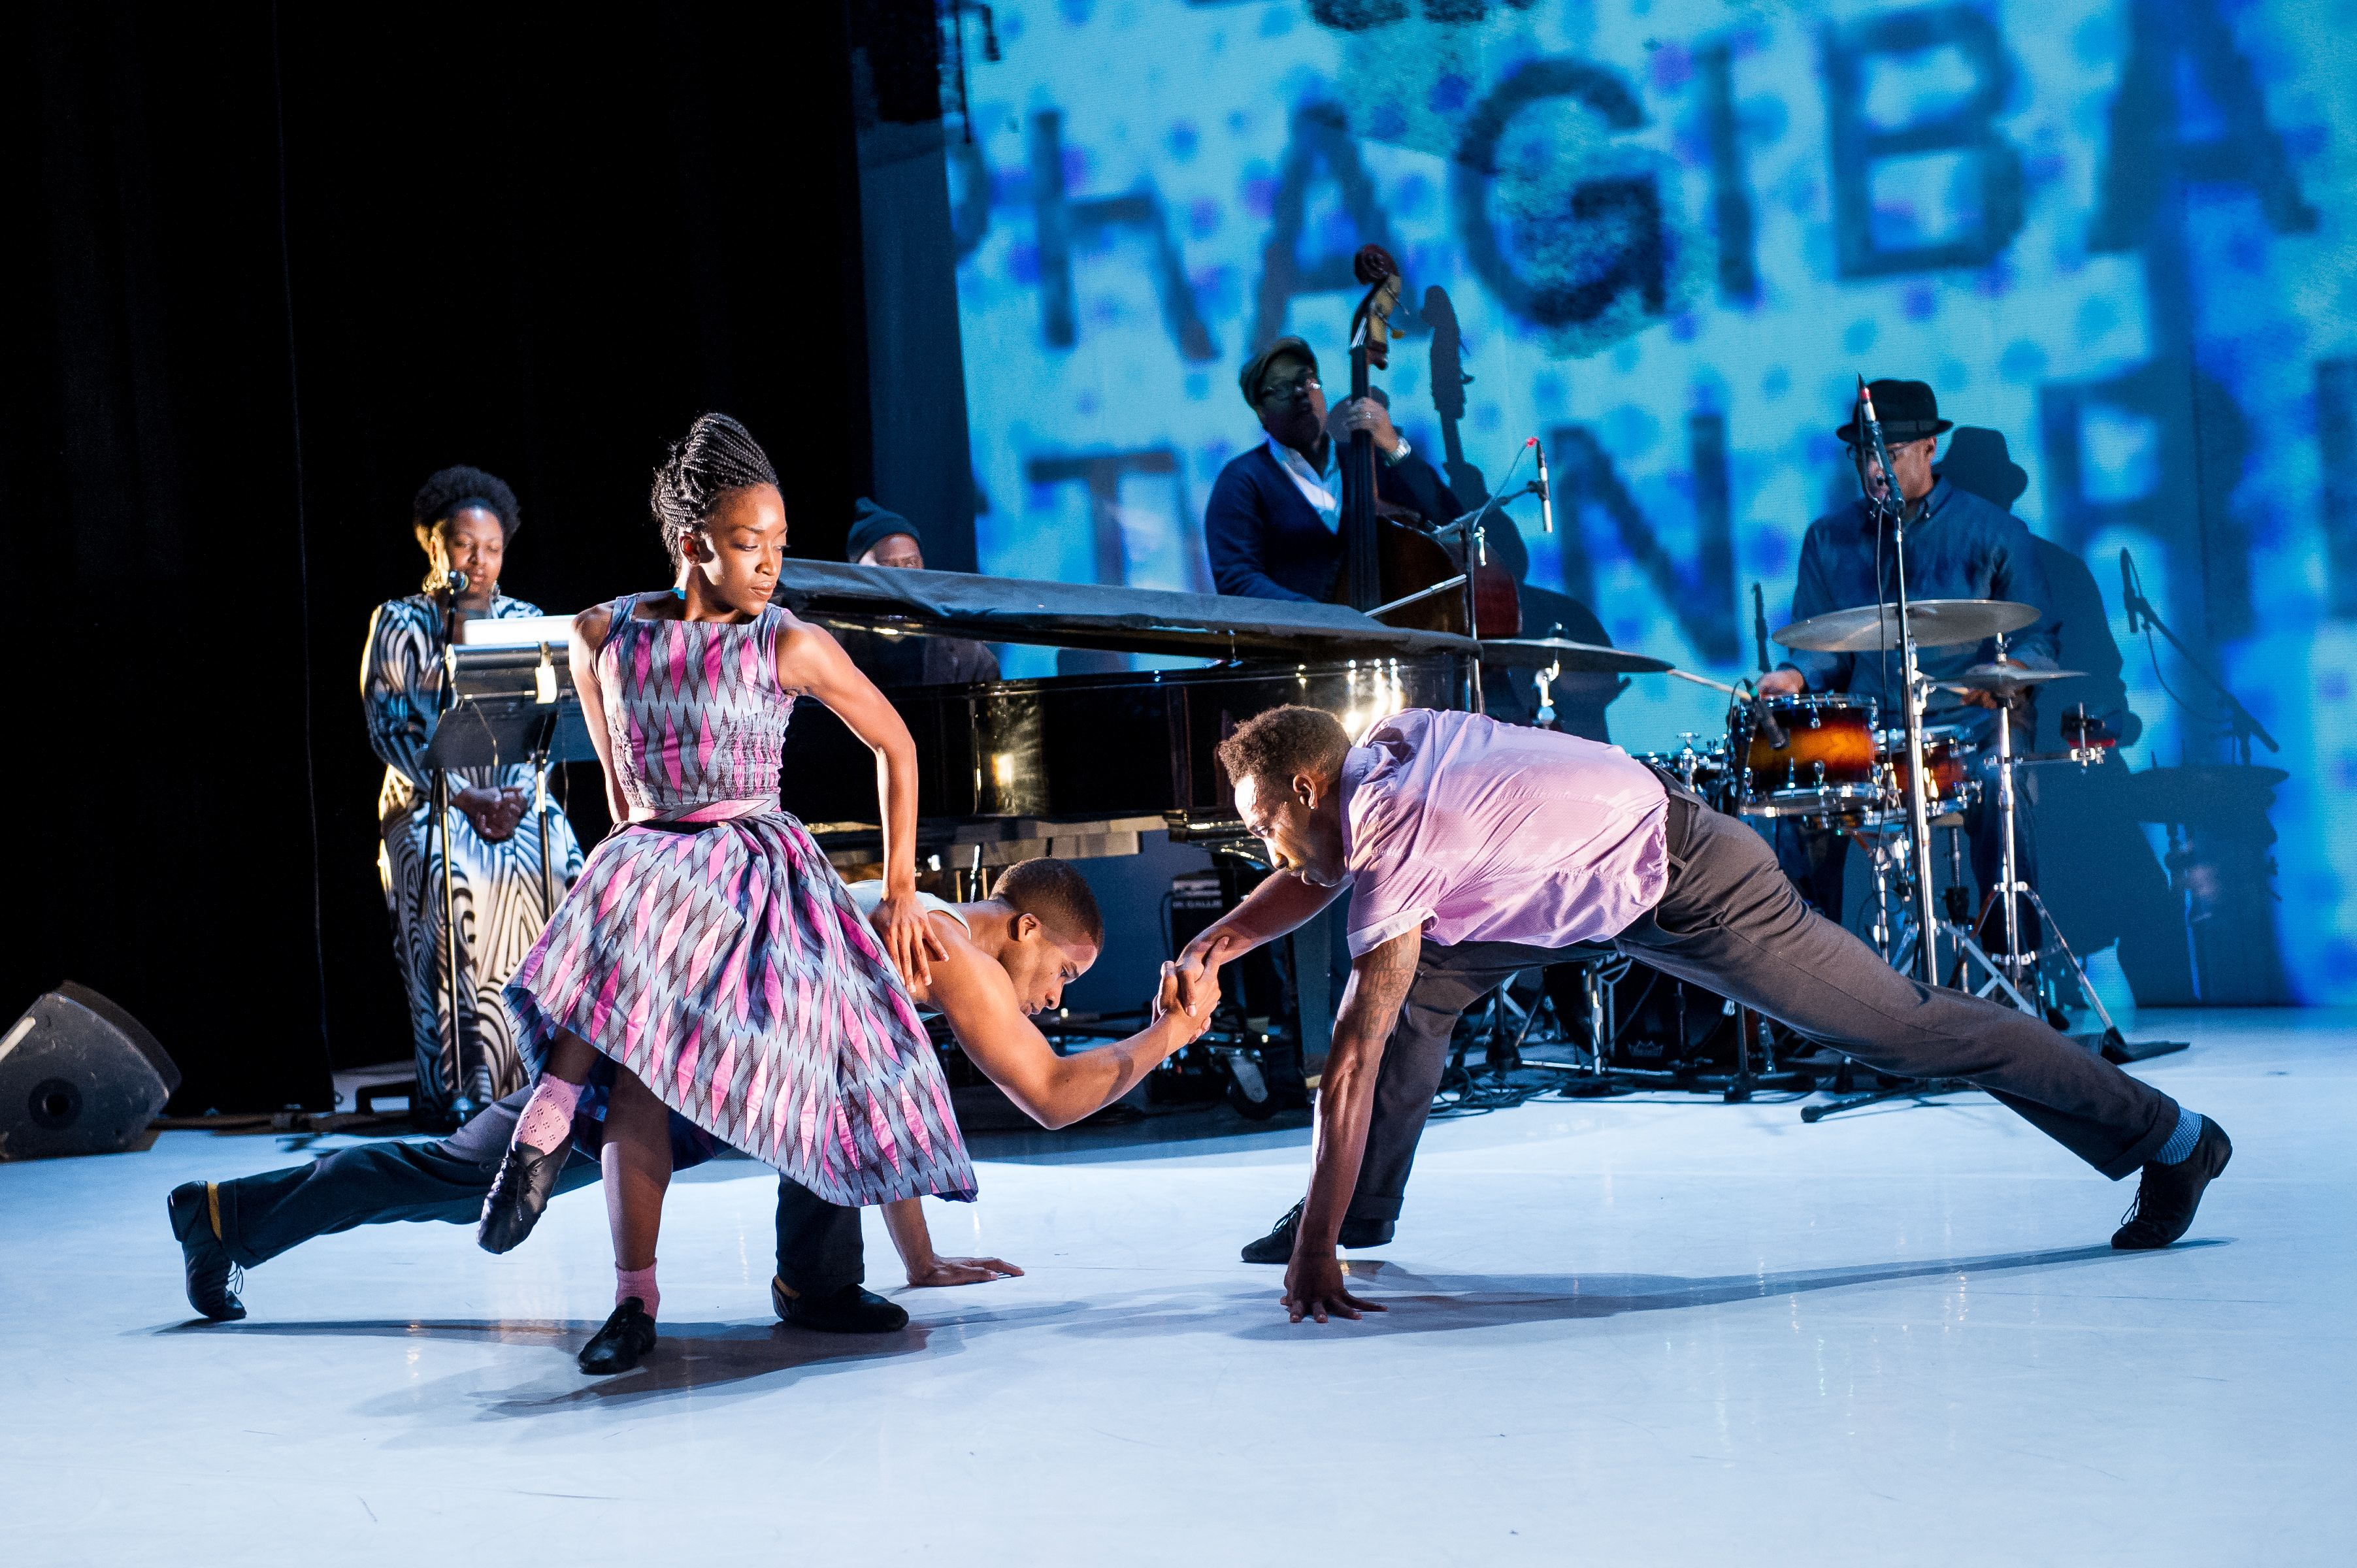 """, Choreographer Kyle Abraham Discusses """"The Watershed"""" and """"When The Wolves Came In"""", Life+Times"""